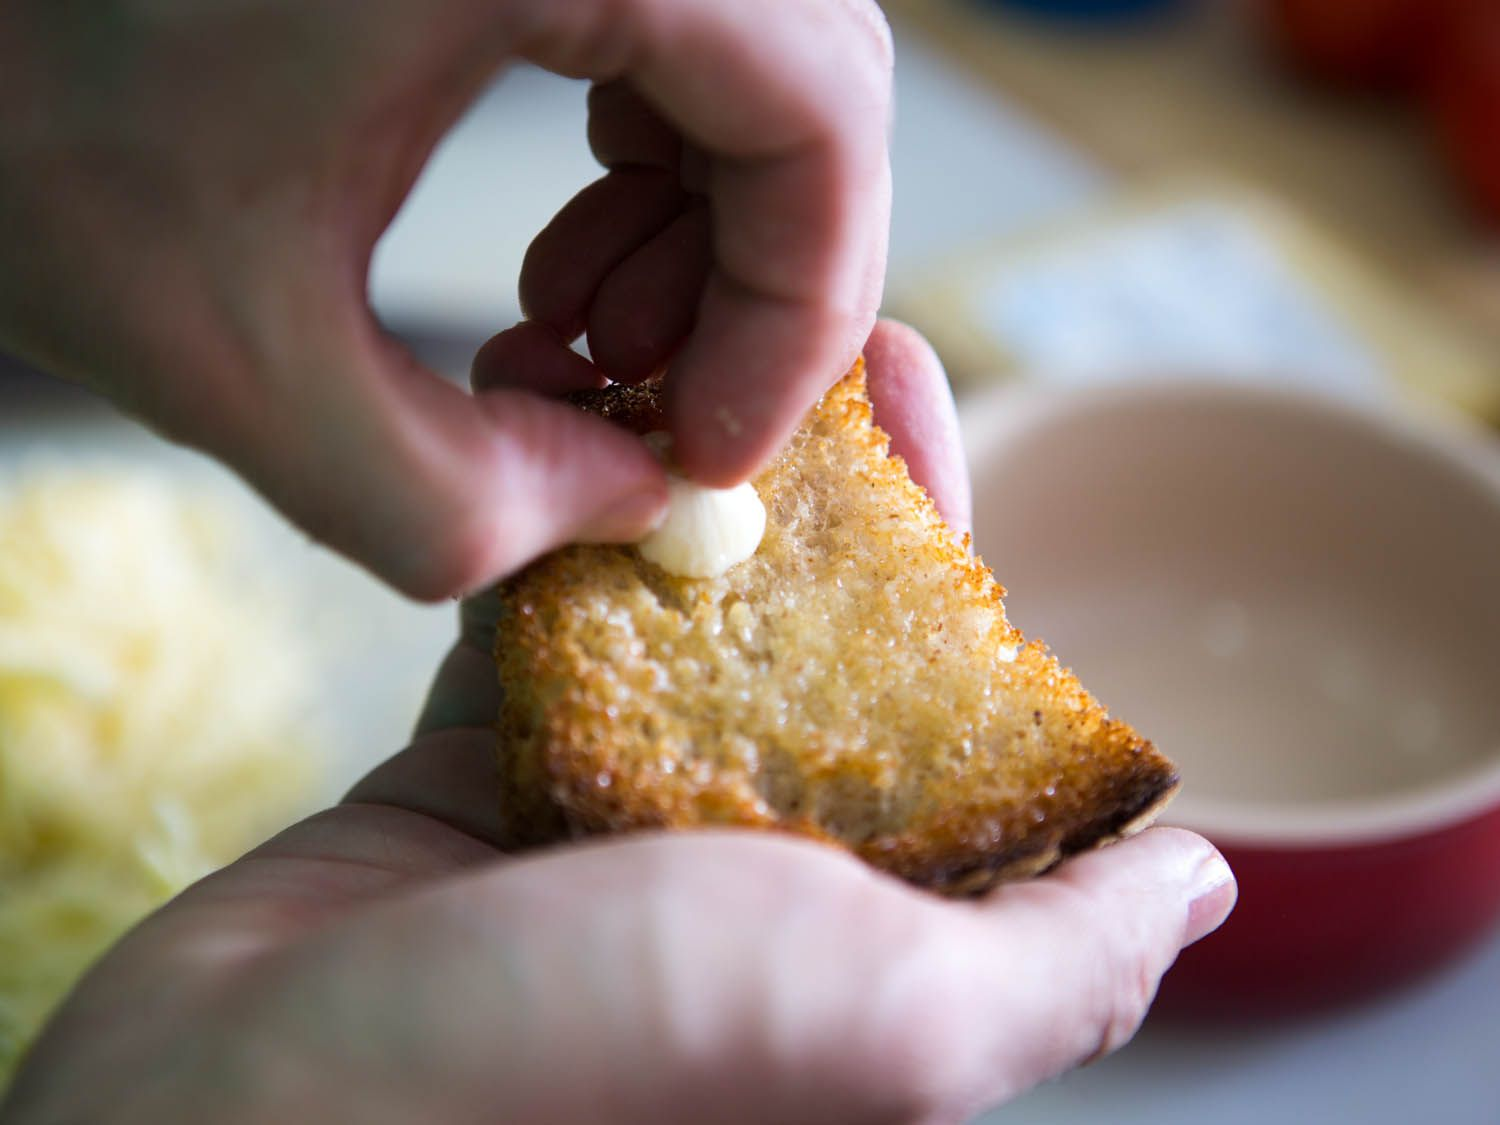 Rubbing a piece of toast with garlic before using it to top French onion soup.